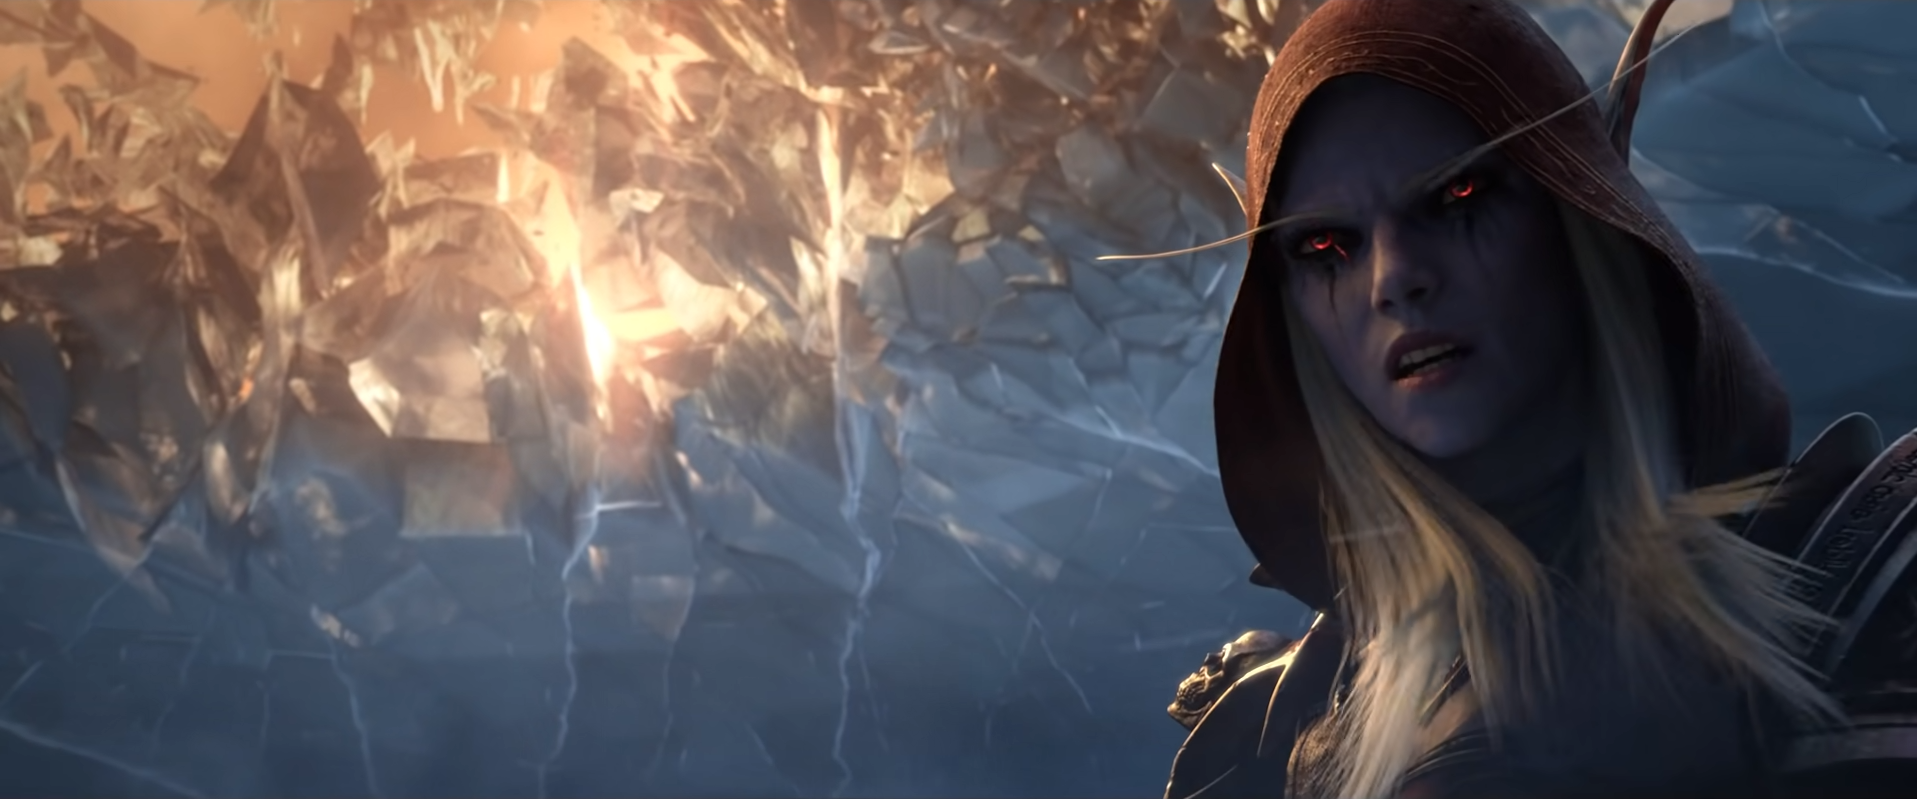 World of Warcraft: Shadowlands will finally arrive later this year, according to Blizzard's last quarterly report.